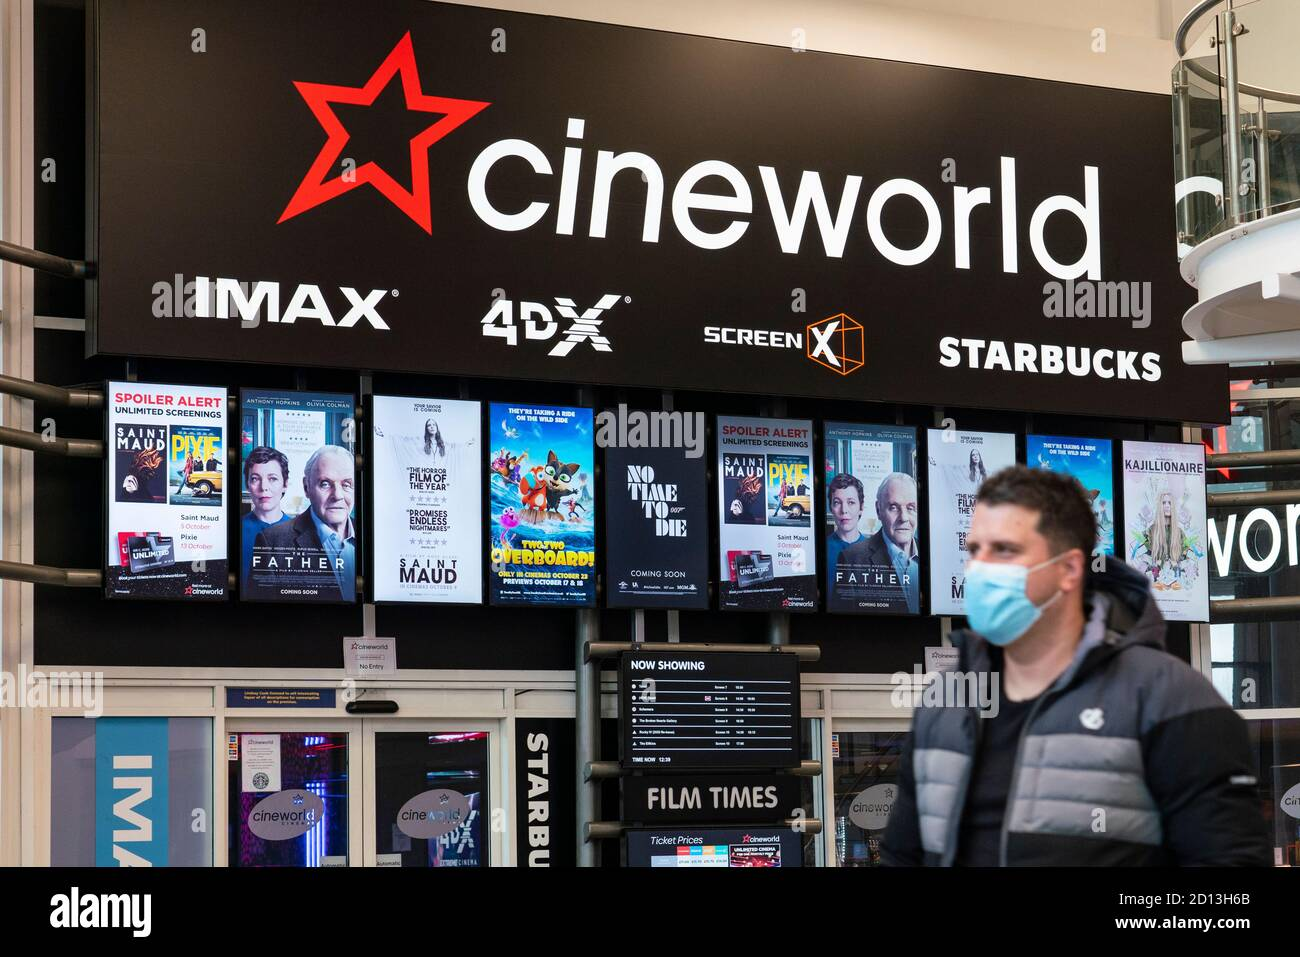 Cineworld Edinburgh High Resolution Stock Photography And Images Alamy